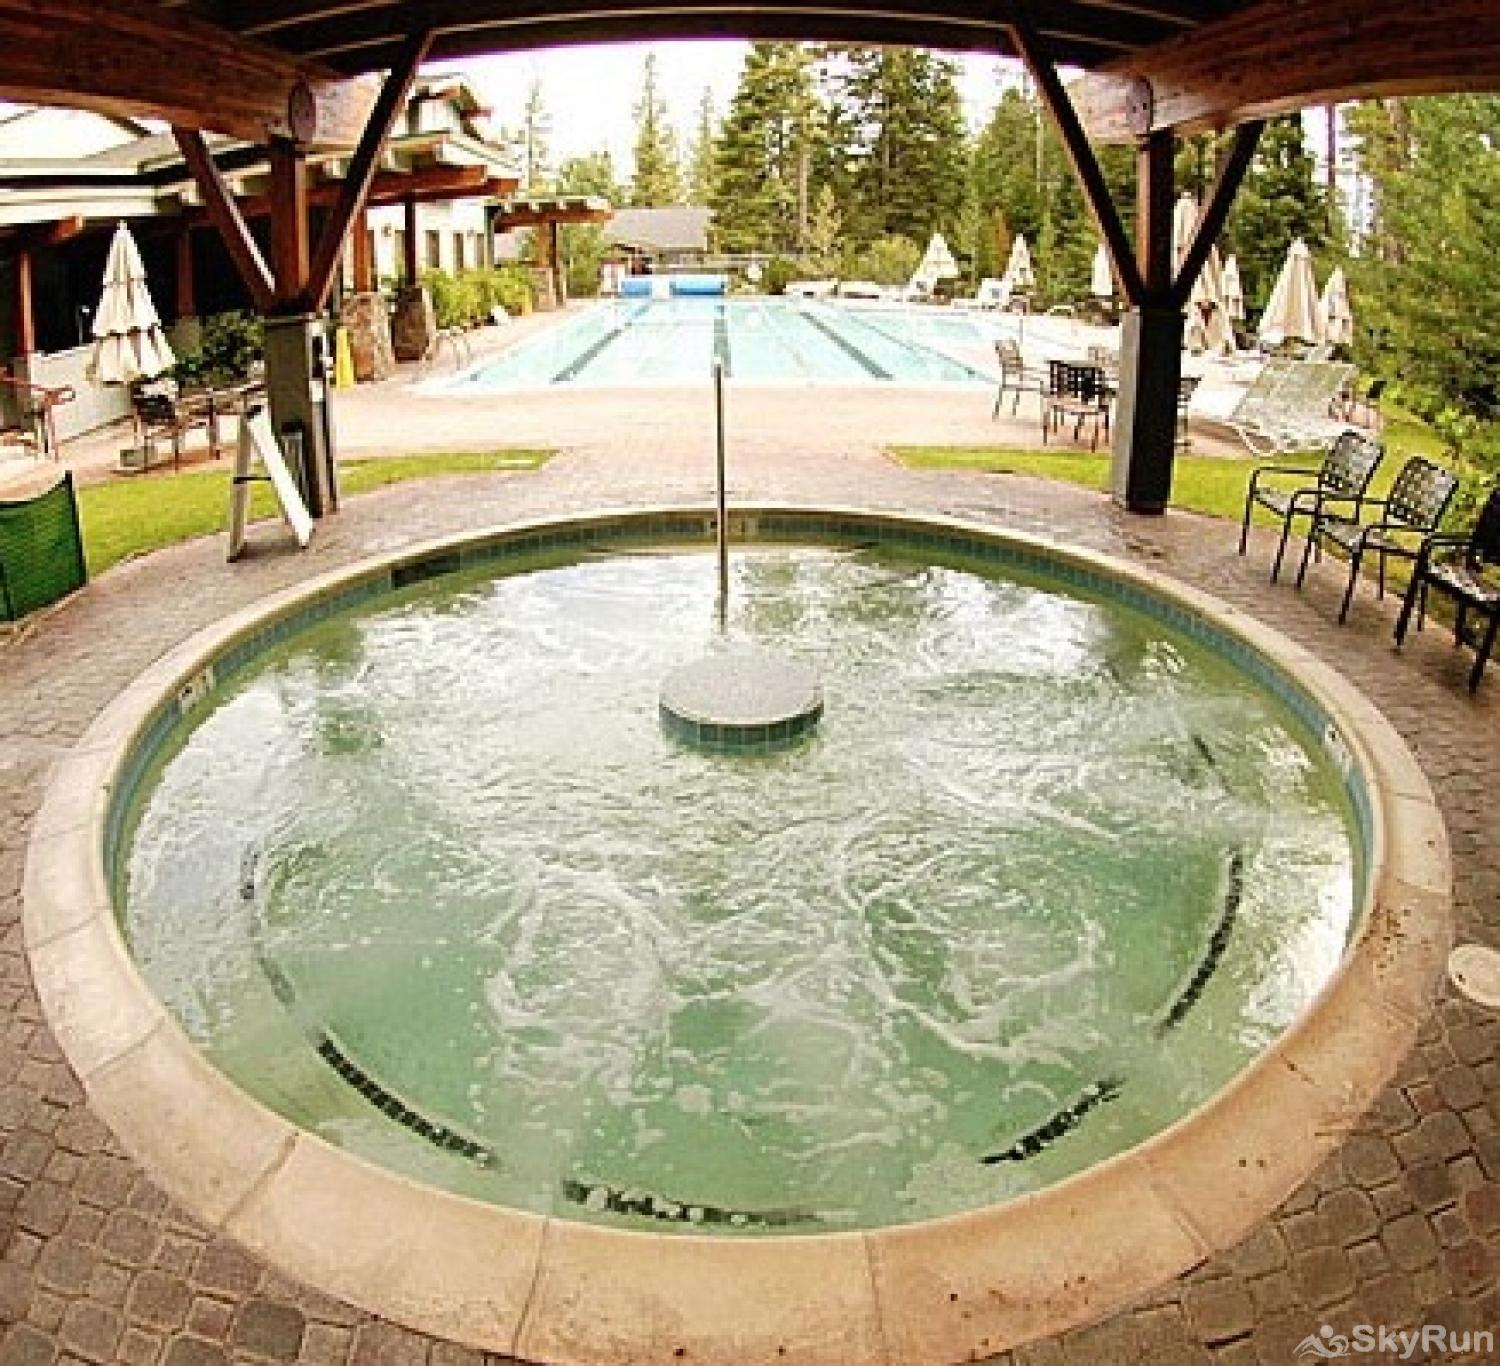 Northstar Luxury Lodgepole Retreat NPOA Recreation Center - Spa